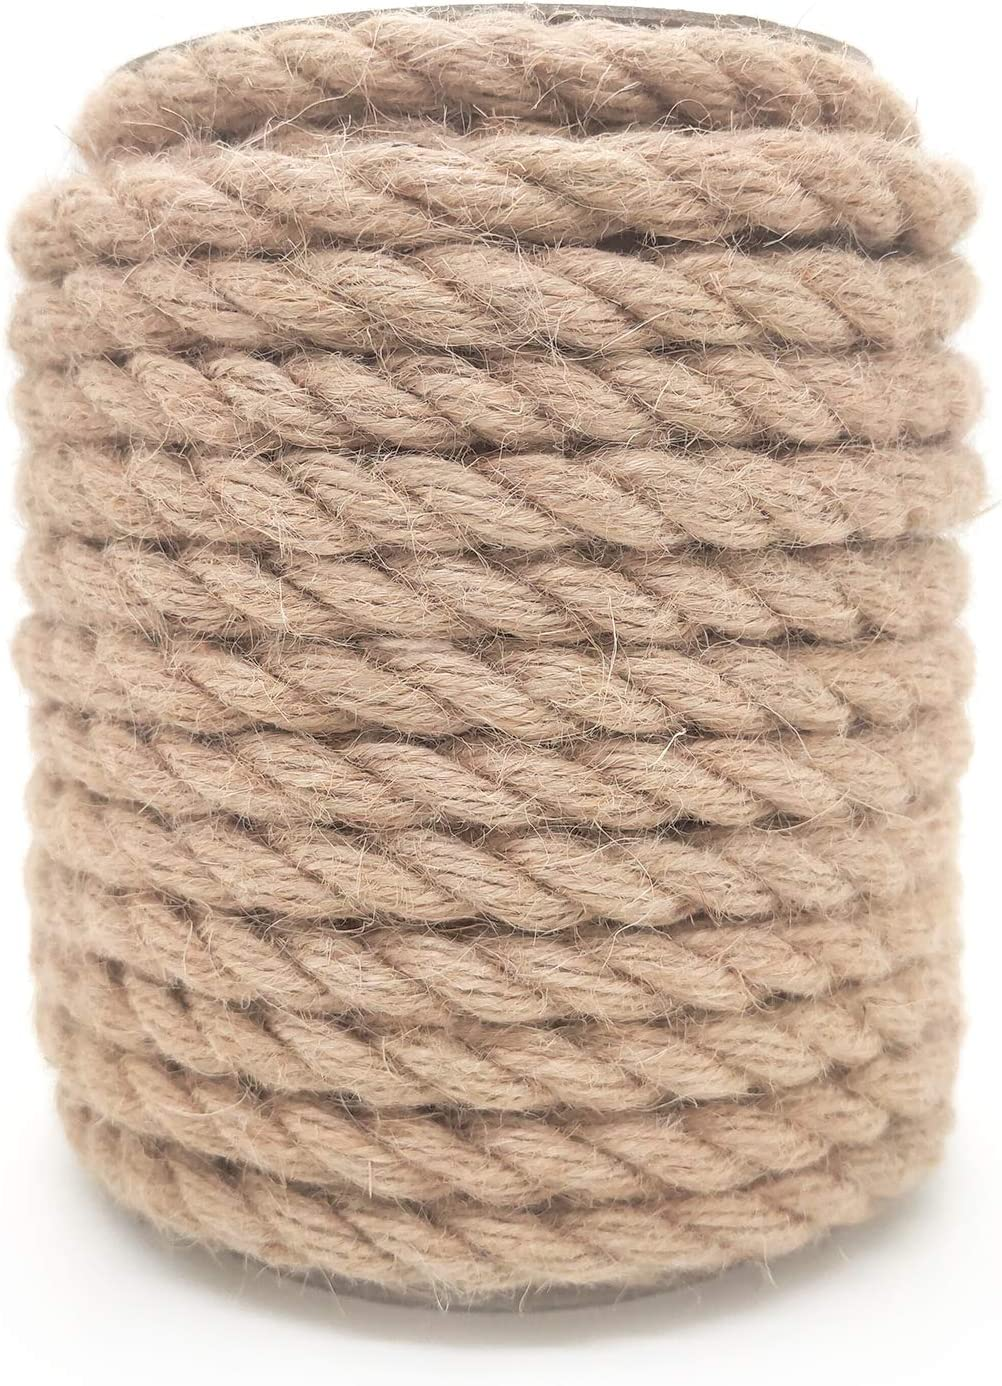 Jute Twine 10mm 60Feet Natural wholesale Rop Outdoor Our shop OFFers the best service Heavy Duty